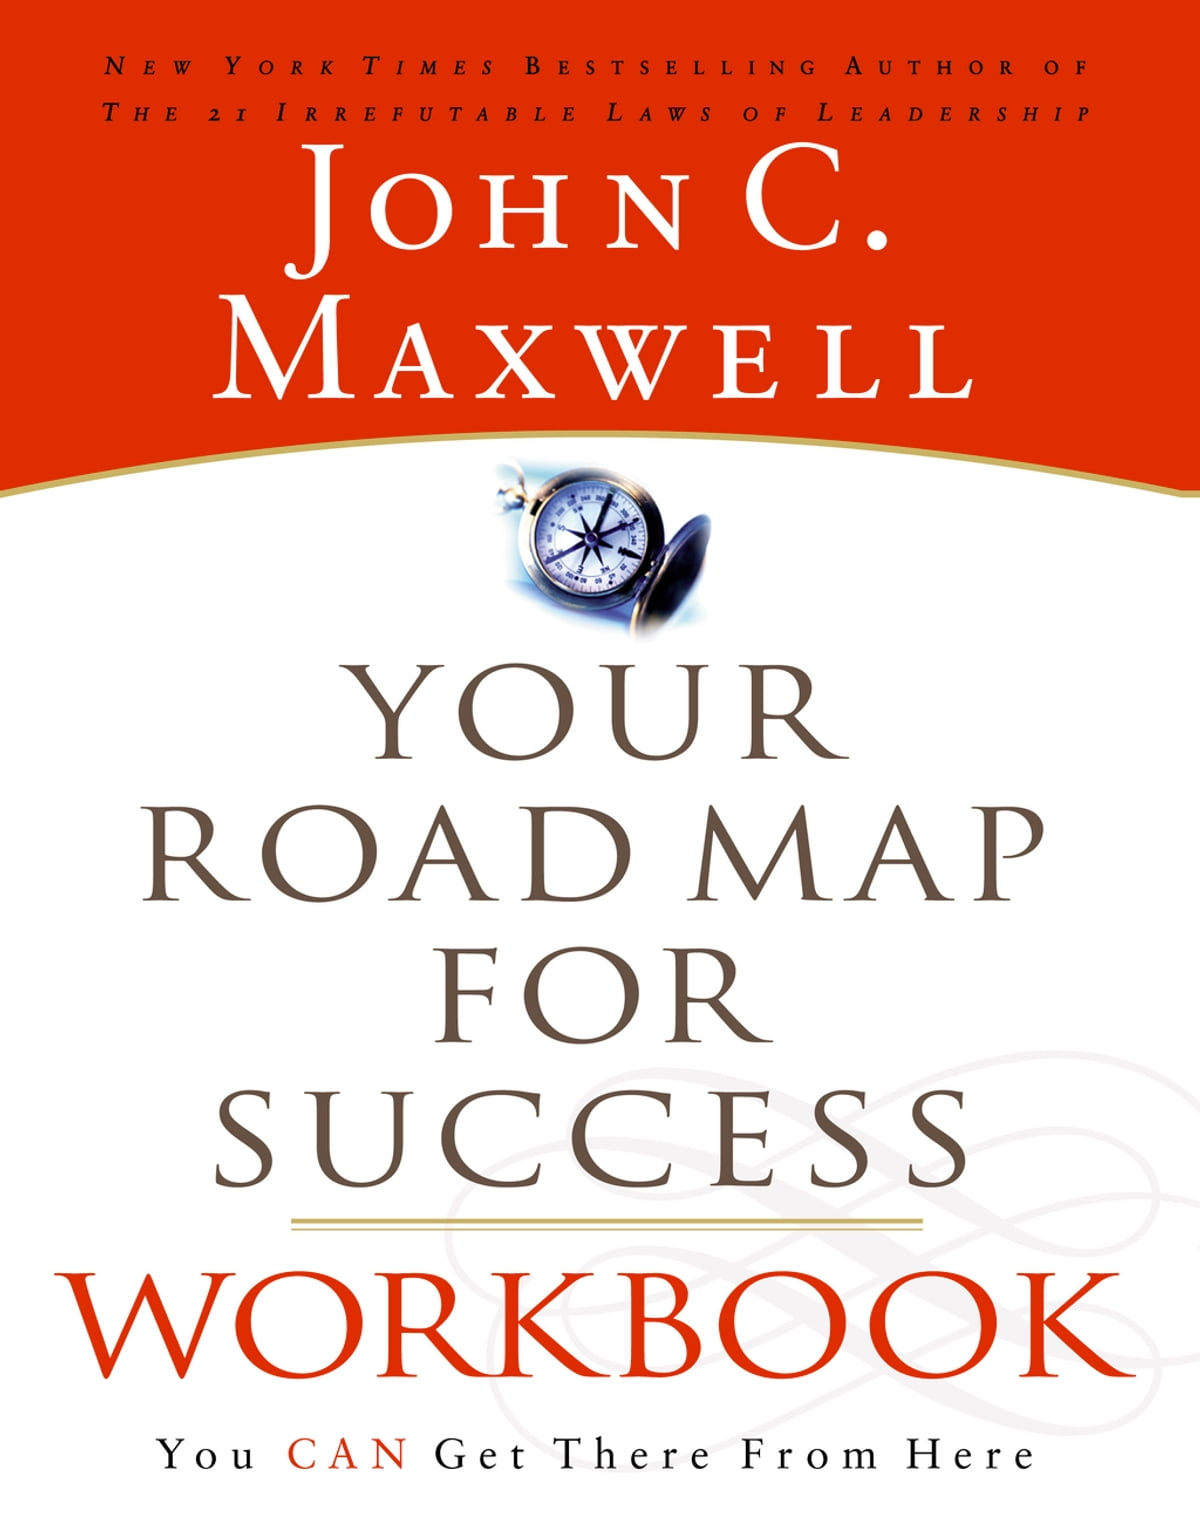 Workbooks success principles workbook : Your Road Map For Success Workbook eBook by John C. Maxwell ...